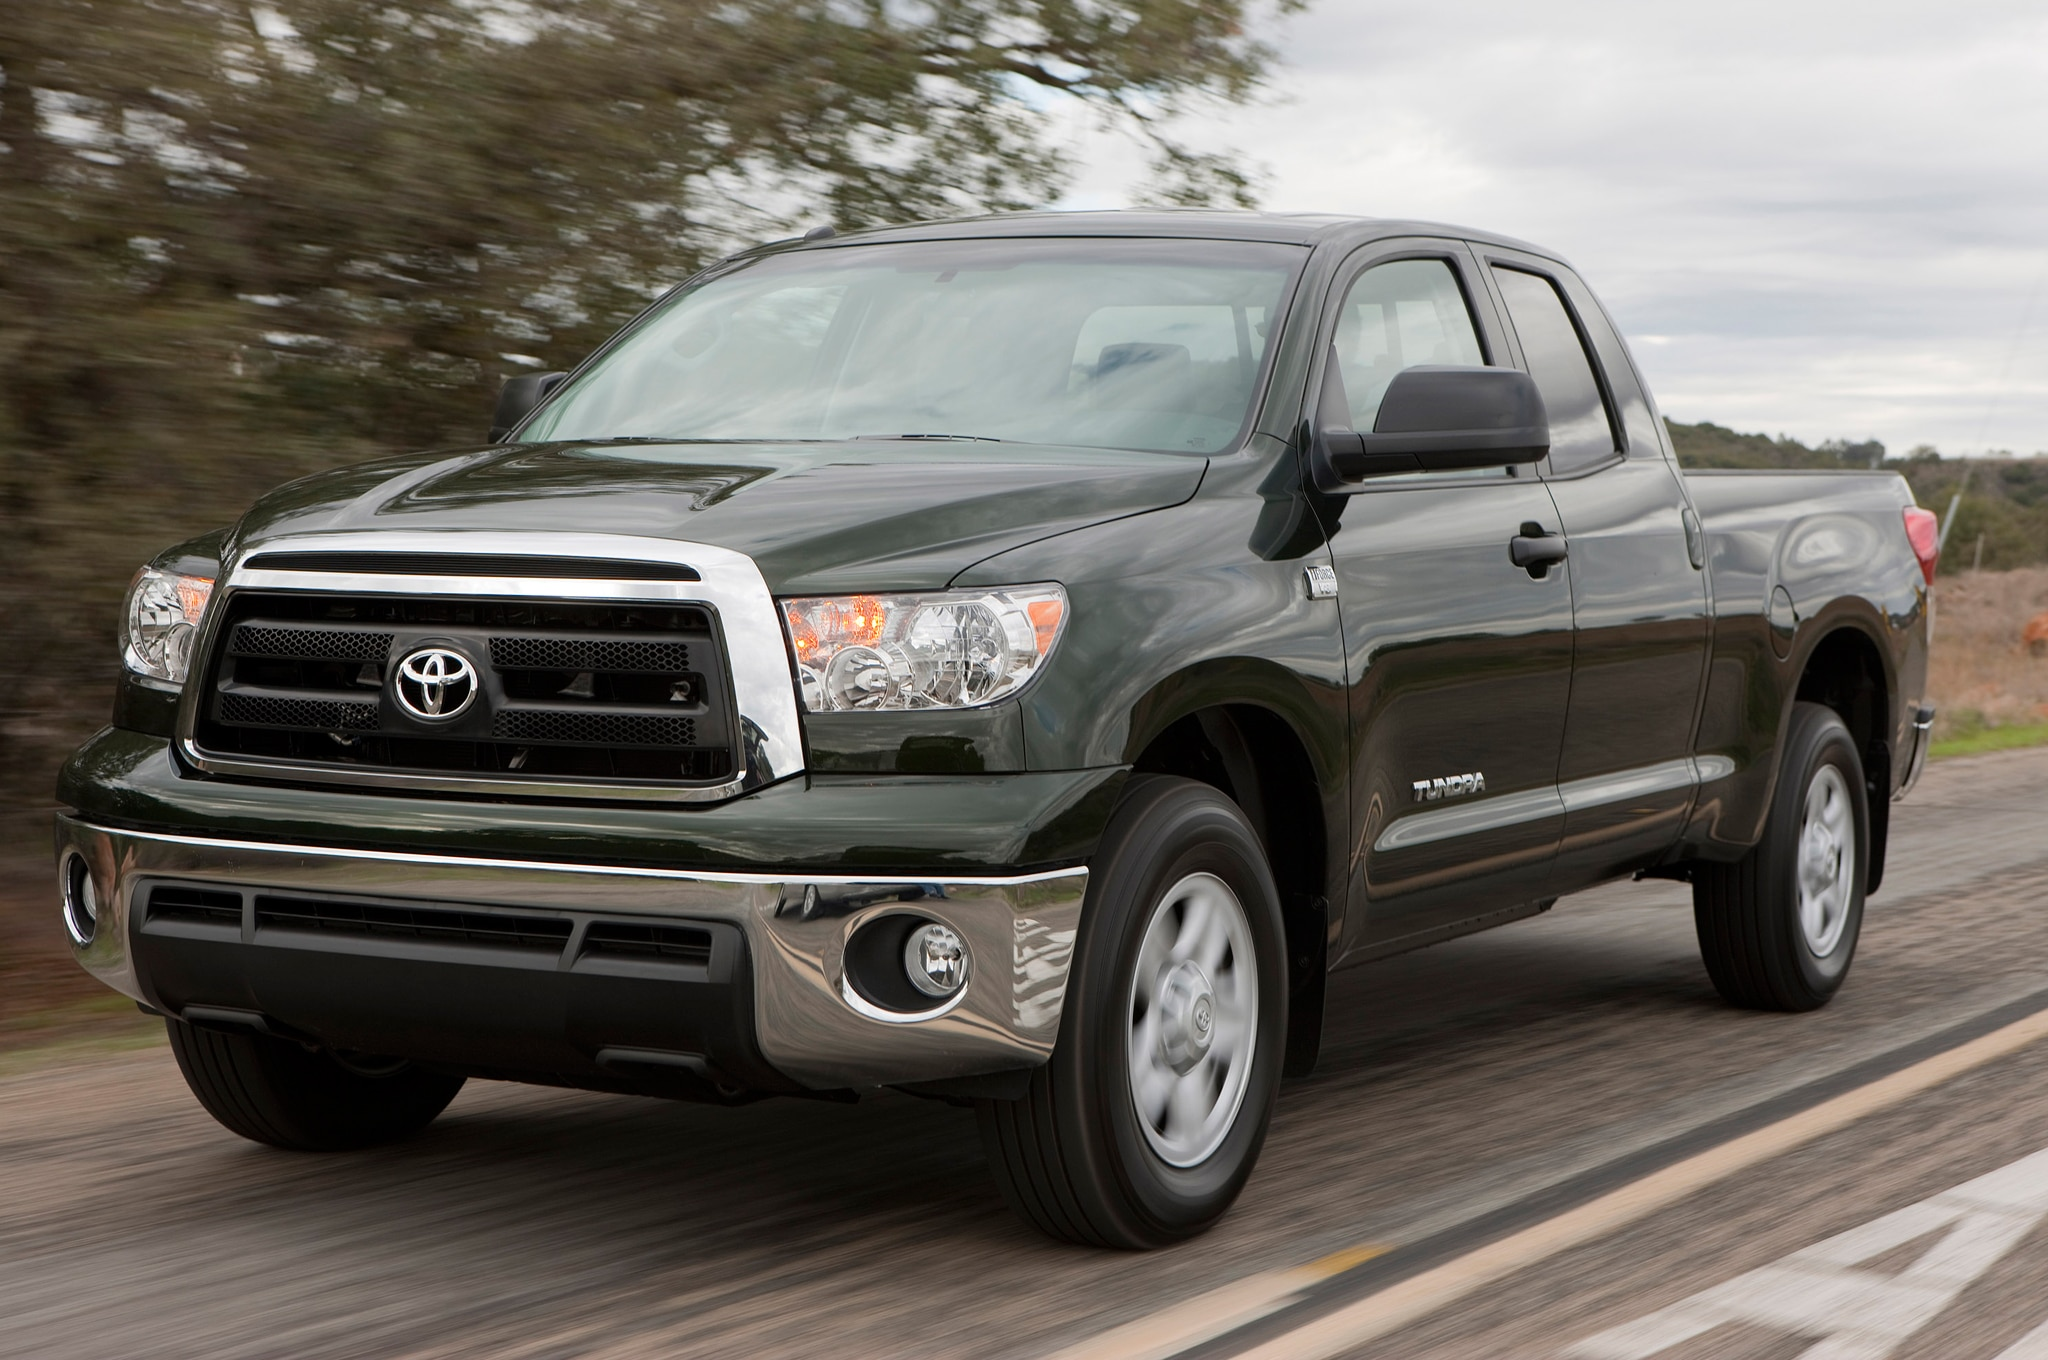 F150 Double Cab >> 2013 Toyota Tundra Double Cab 4x4 - Editors' Notebook - Automobile Magazine